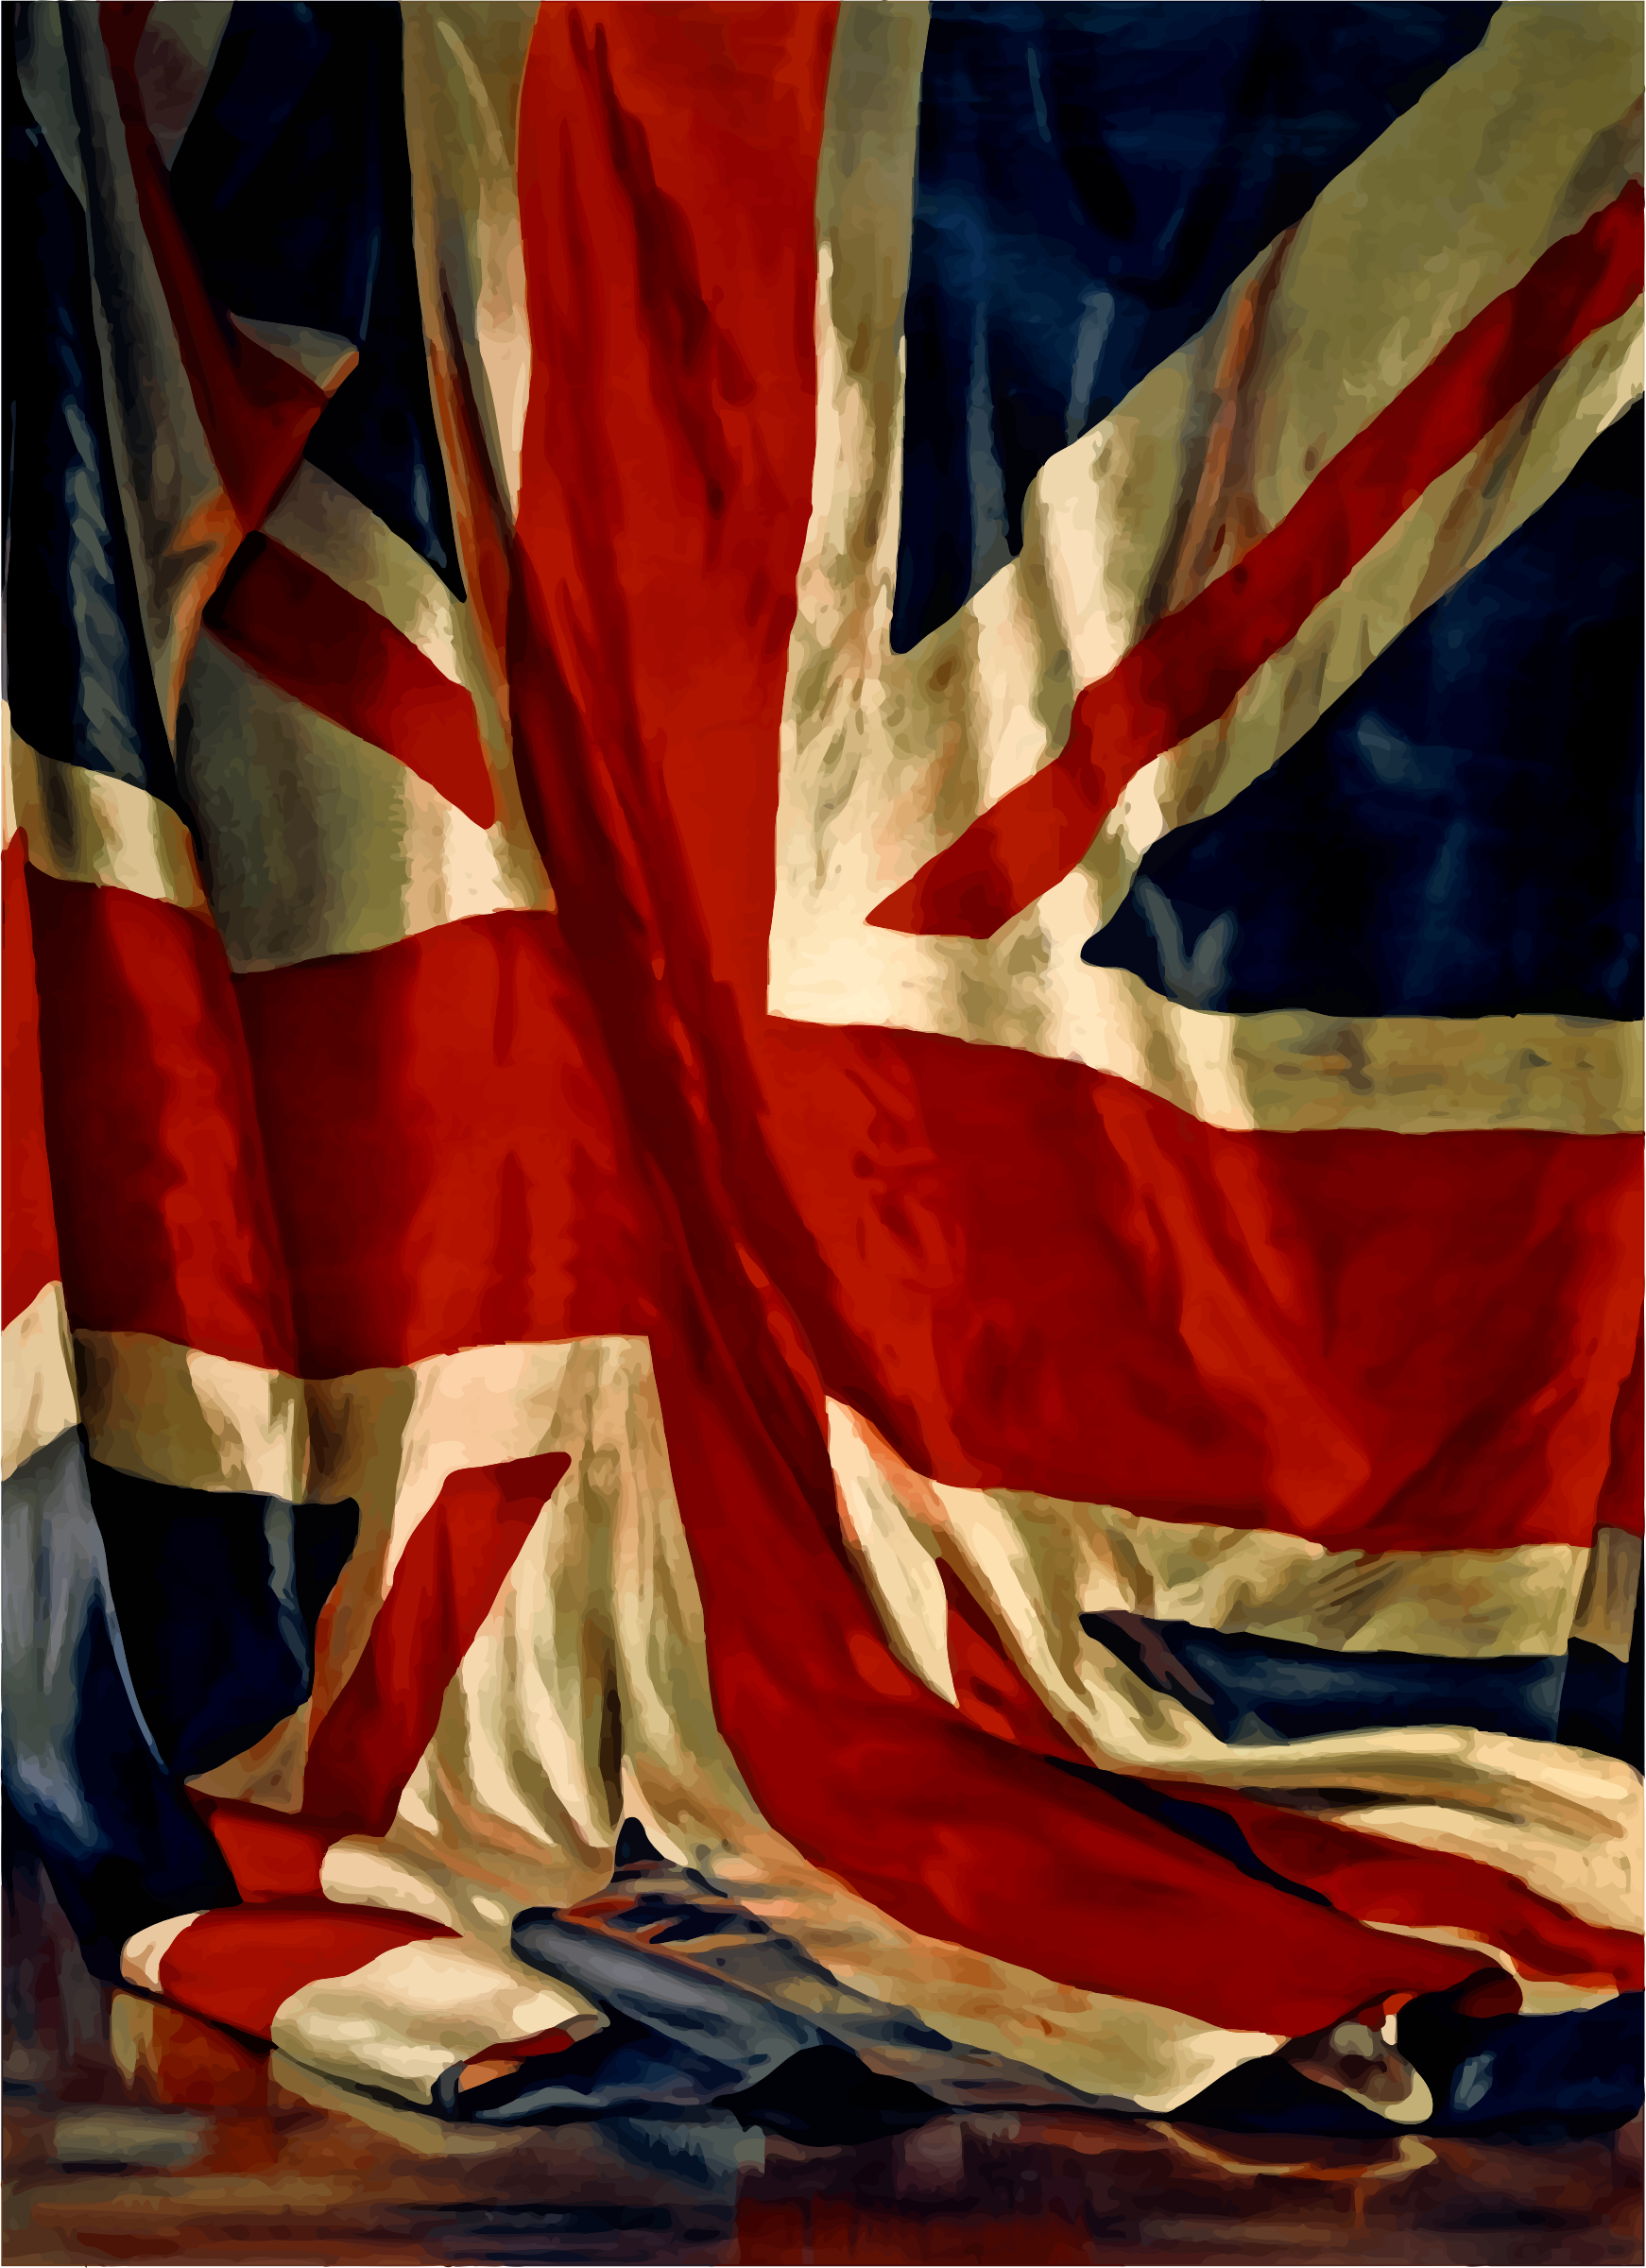 Union flag by Firkin